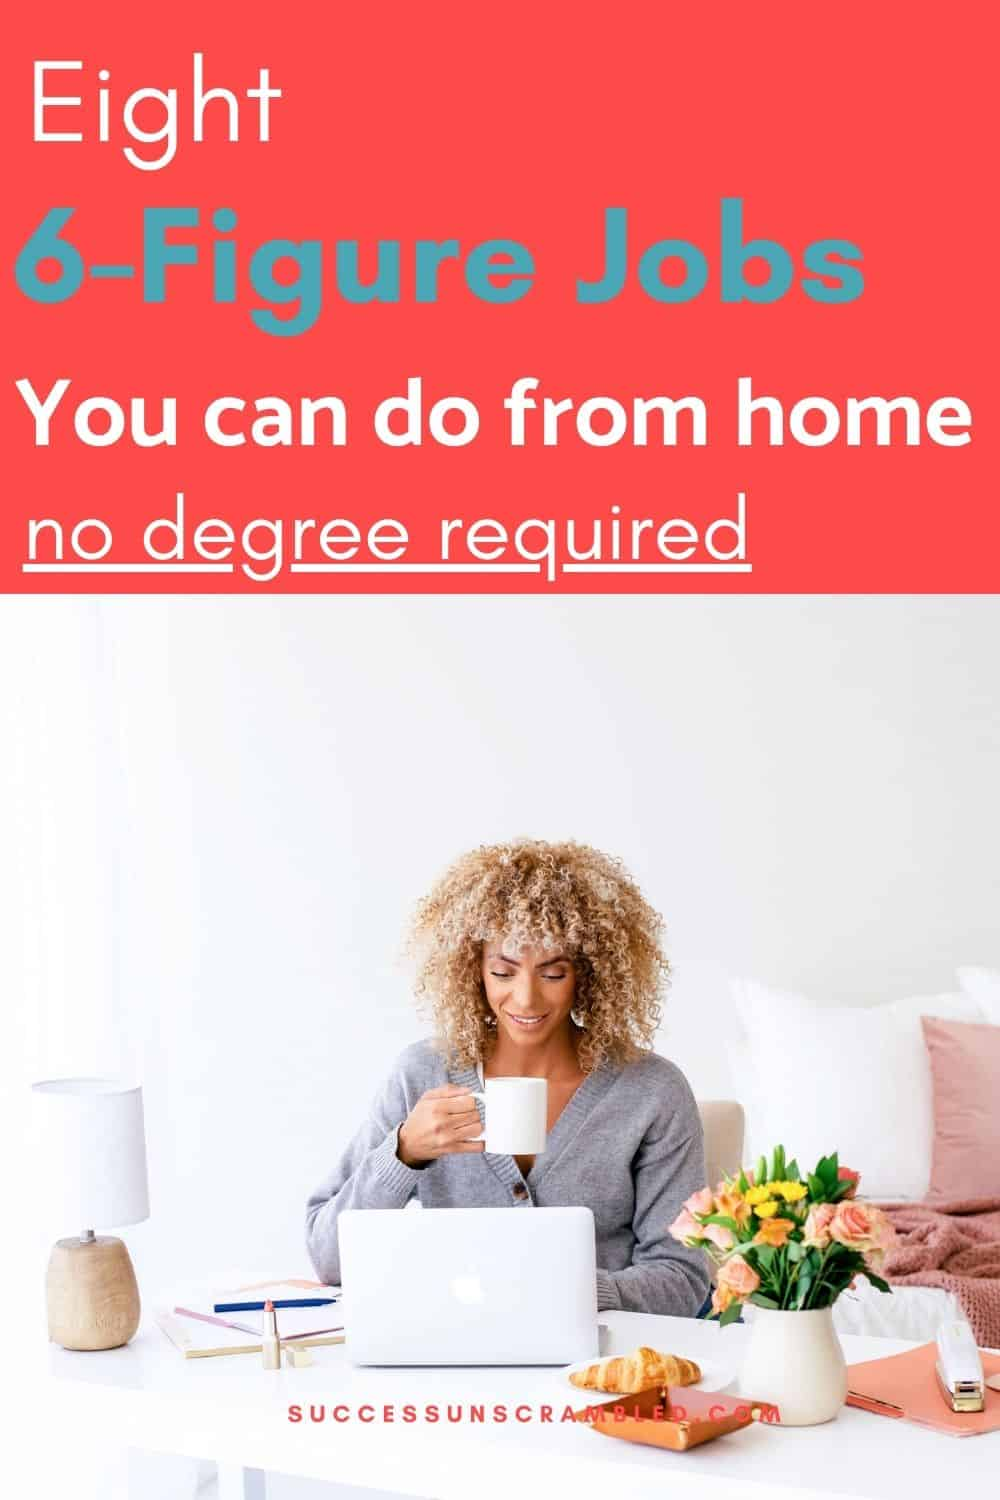 6 Figure Jobs salary you can do from home